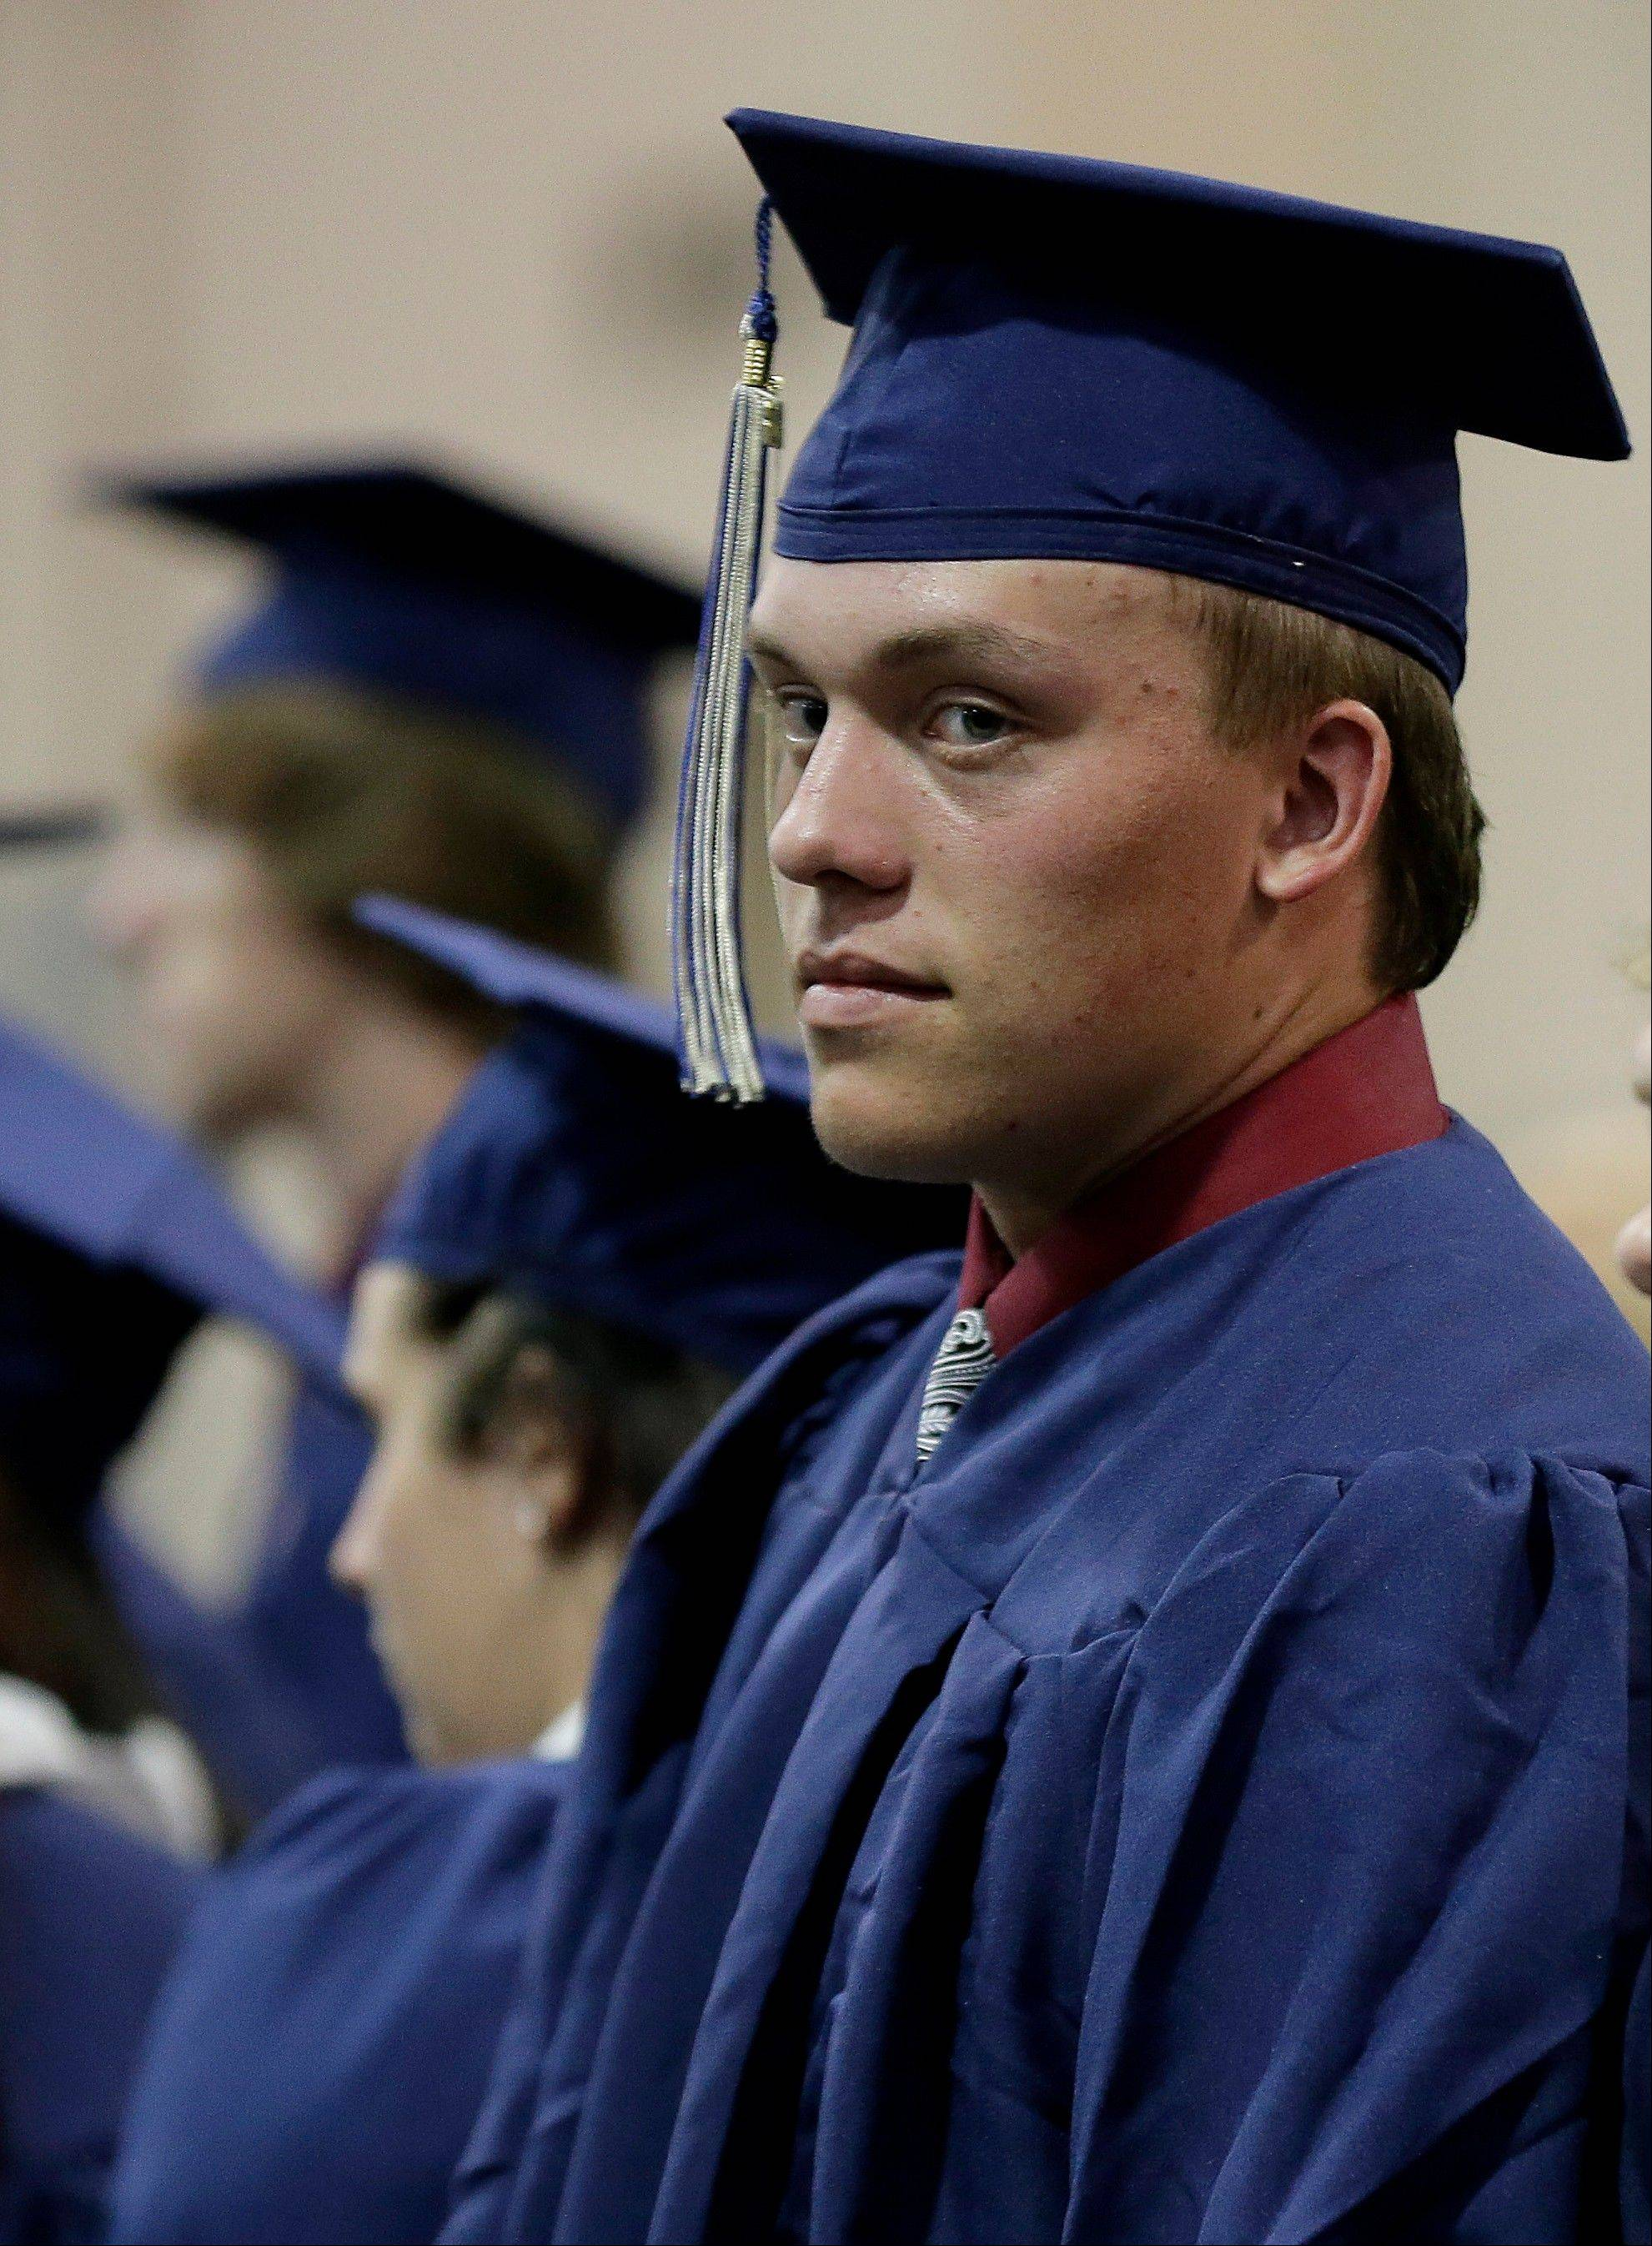 Southmoore High School senior Jake Spradling waits with his classmates before their commencement ceremony Saturday in Oklahoma City.